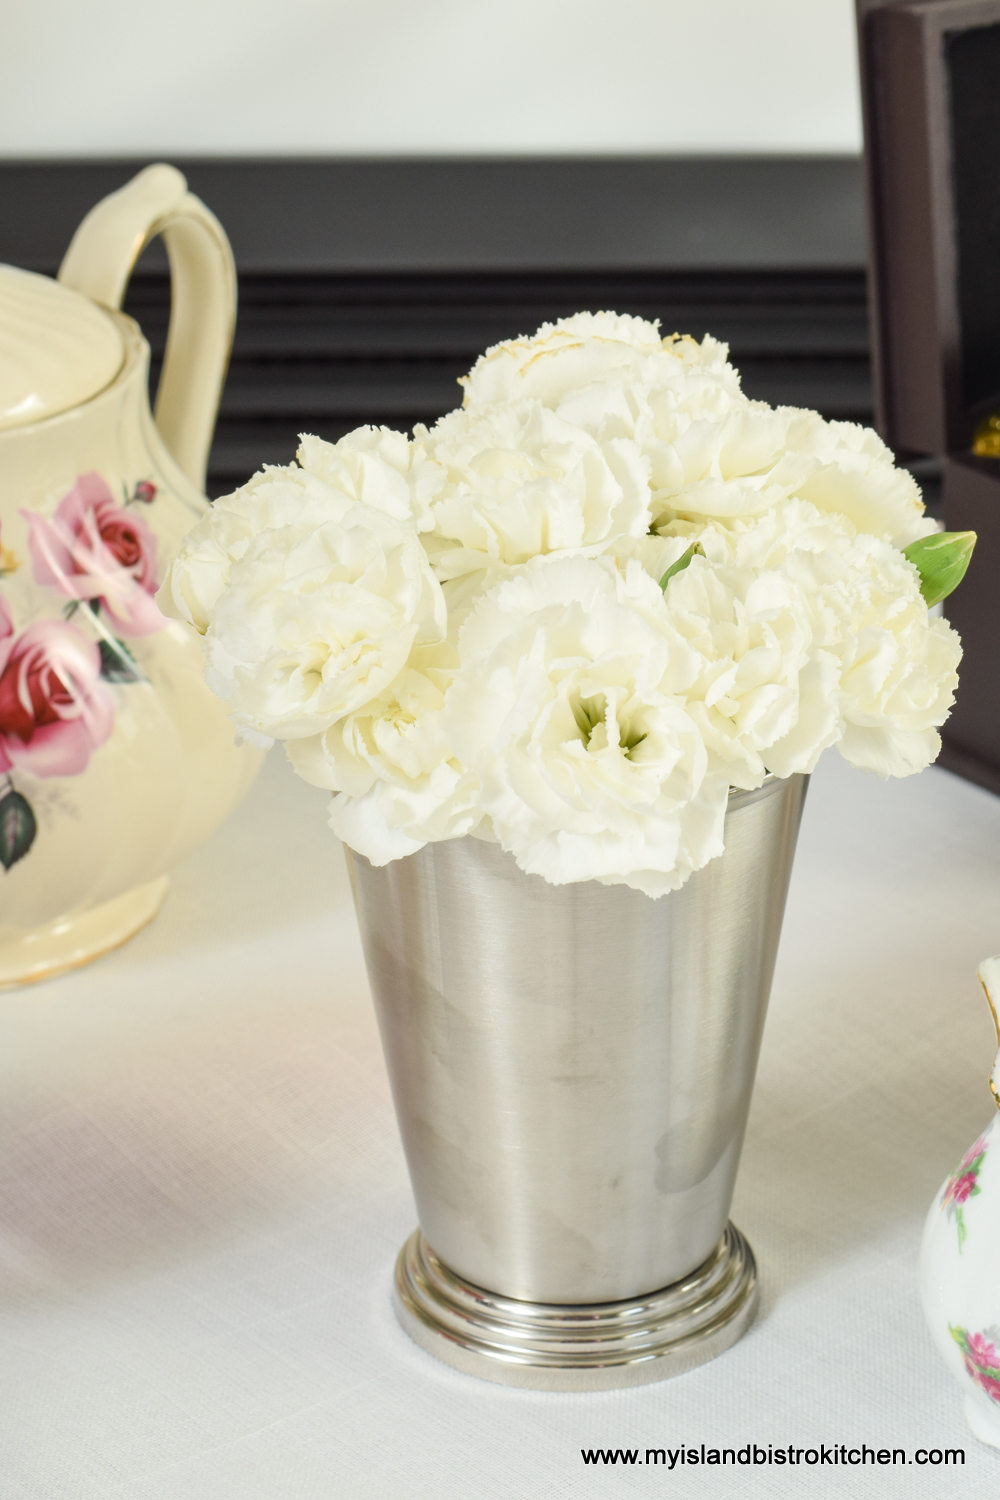 Bouquet of Mini White Carnations for the Tea Table